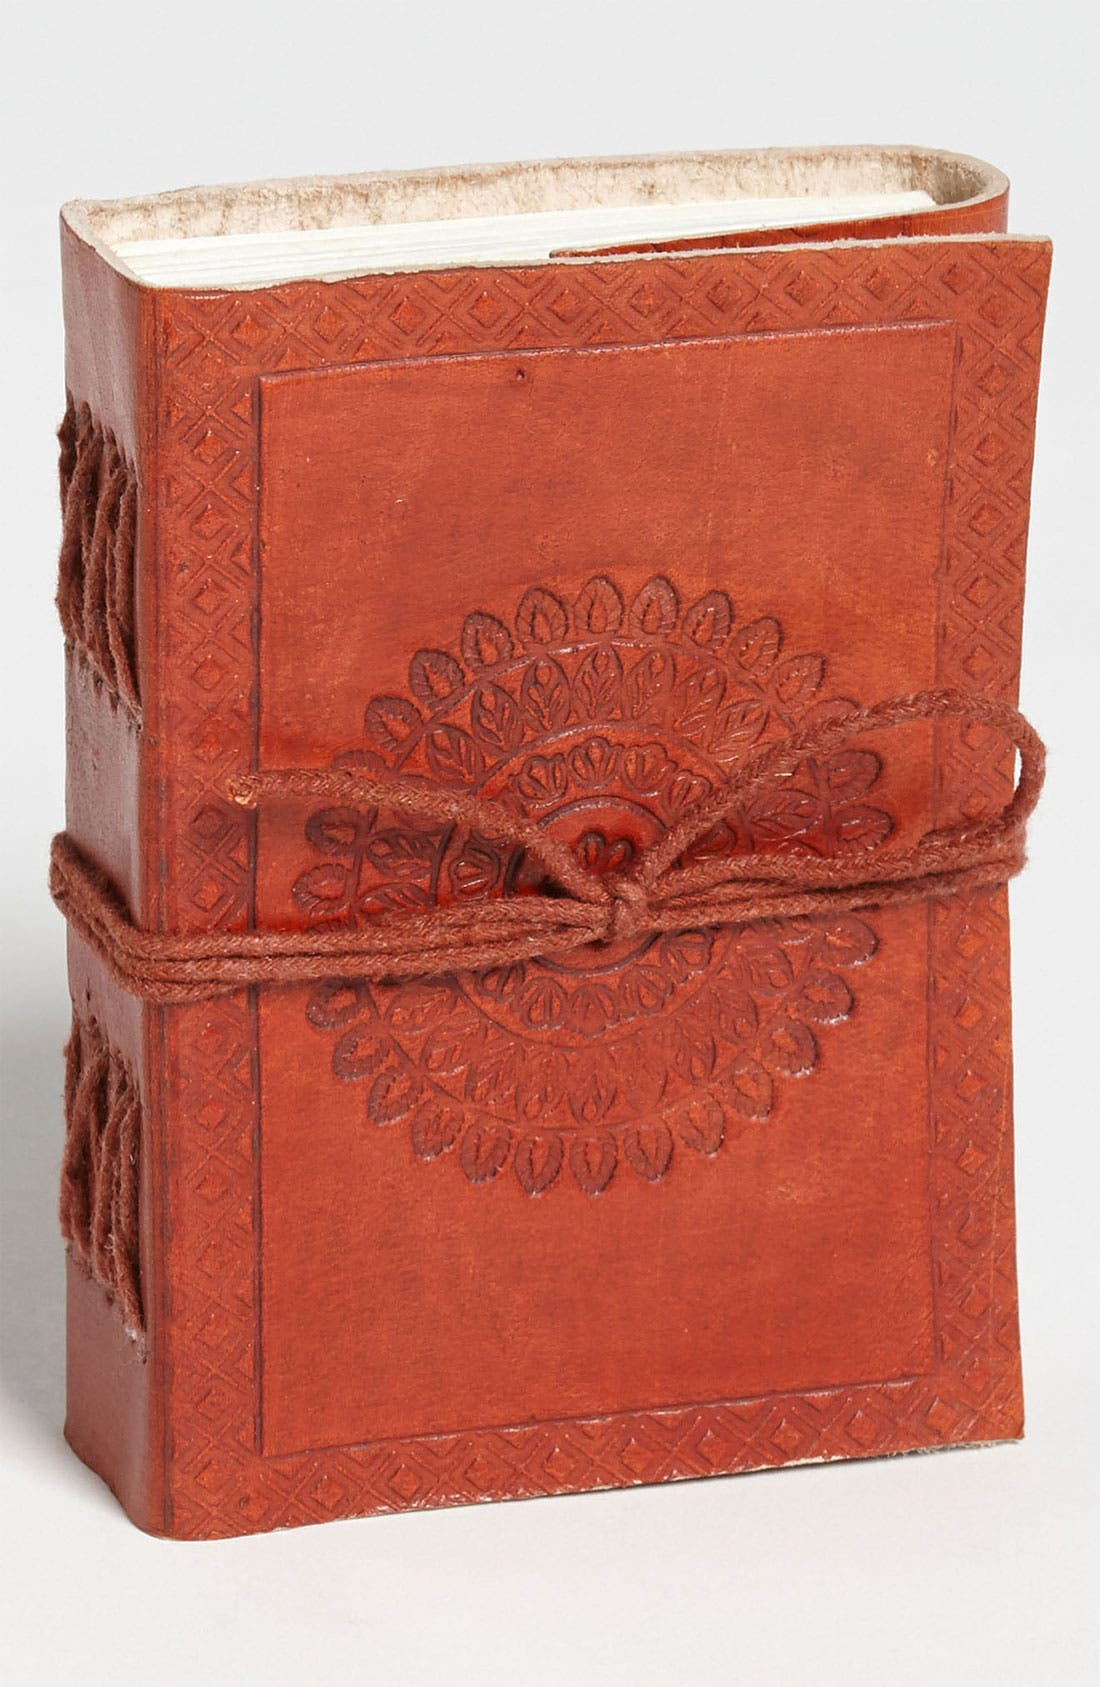 Alternate Image 1 Selected - Leather-Bound Traveler's Notebook, Small